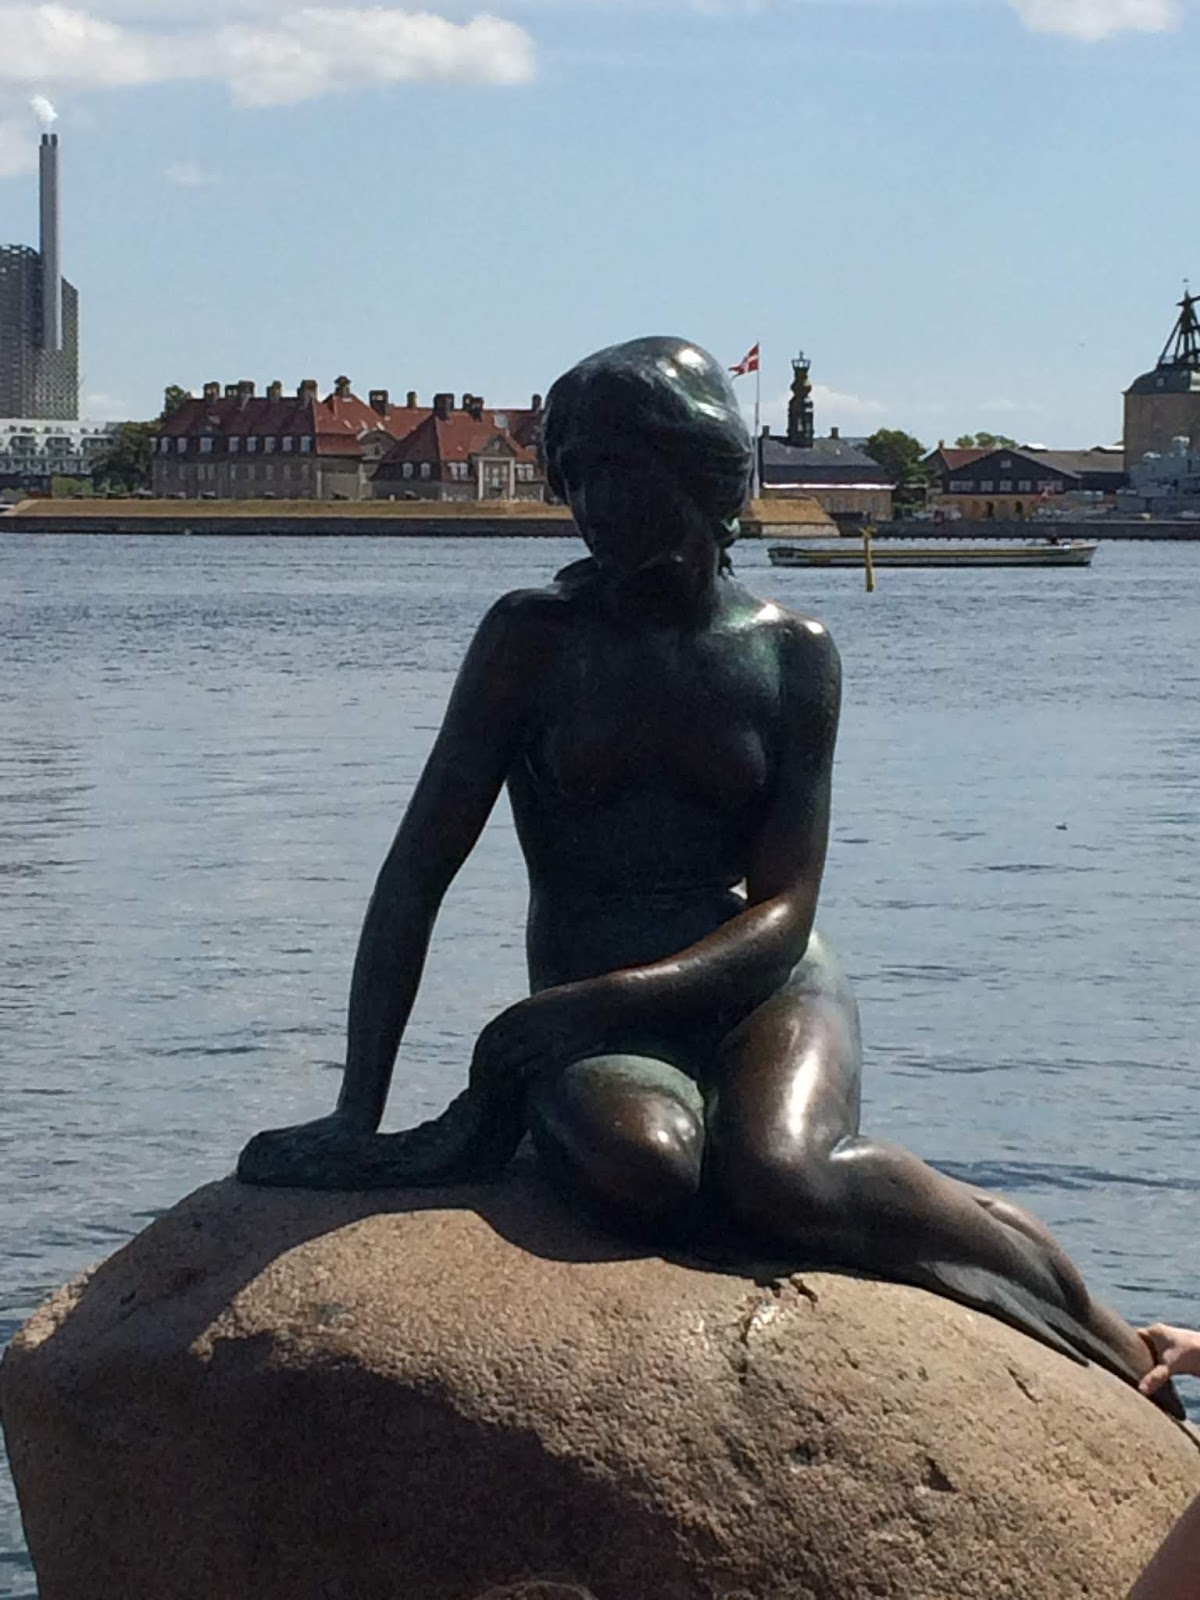 Photo of The Little Mermaid statue taken from the front